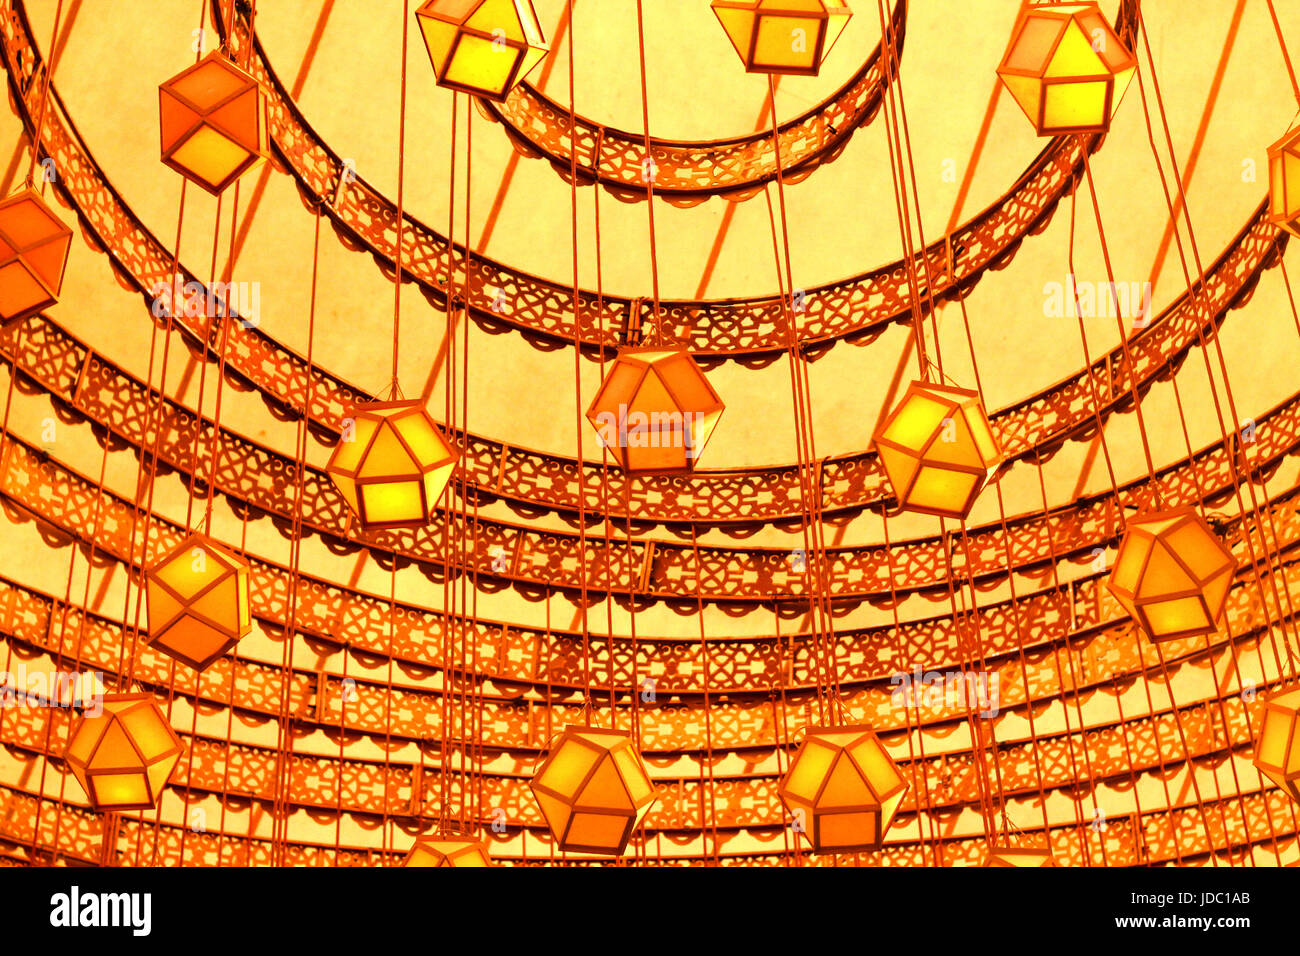 a symmetrical and marvelous  Interior decoration by paper lantern, Laltain lights for Diwali Hindus indian festival Stock Photo